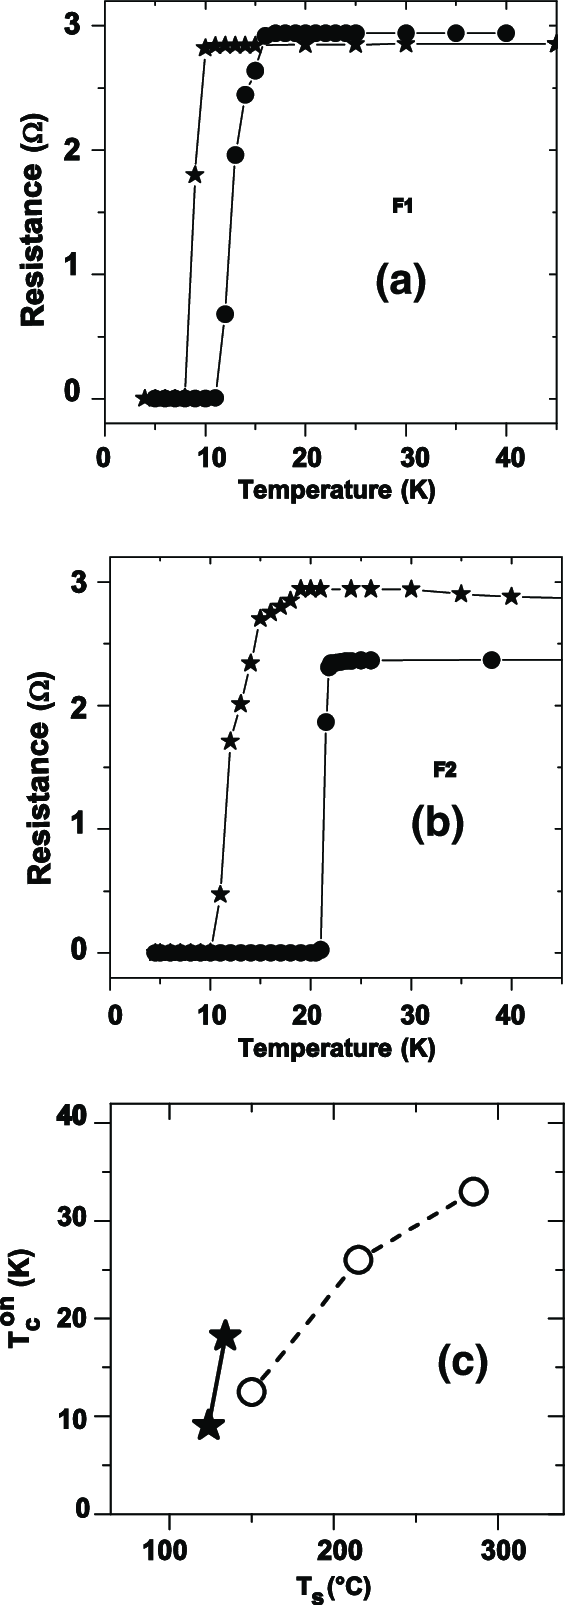 hight resolution of r t curves of mgb 2 films f1 a and f2 b